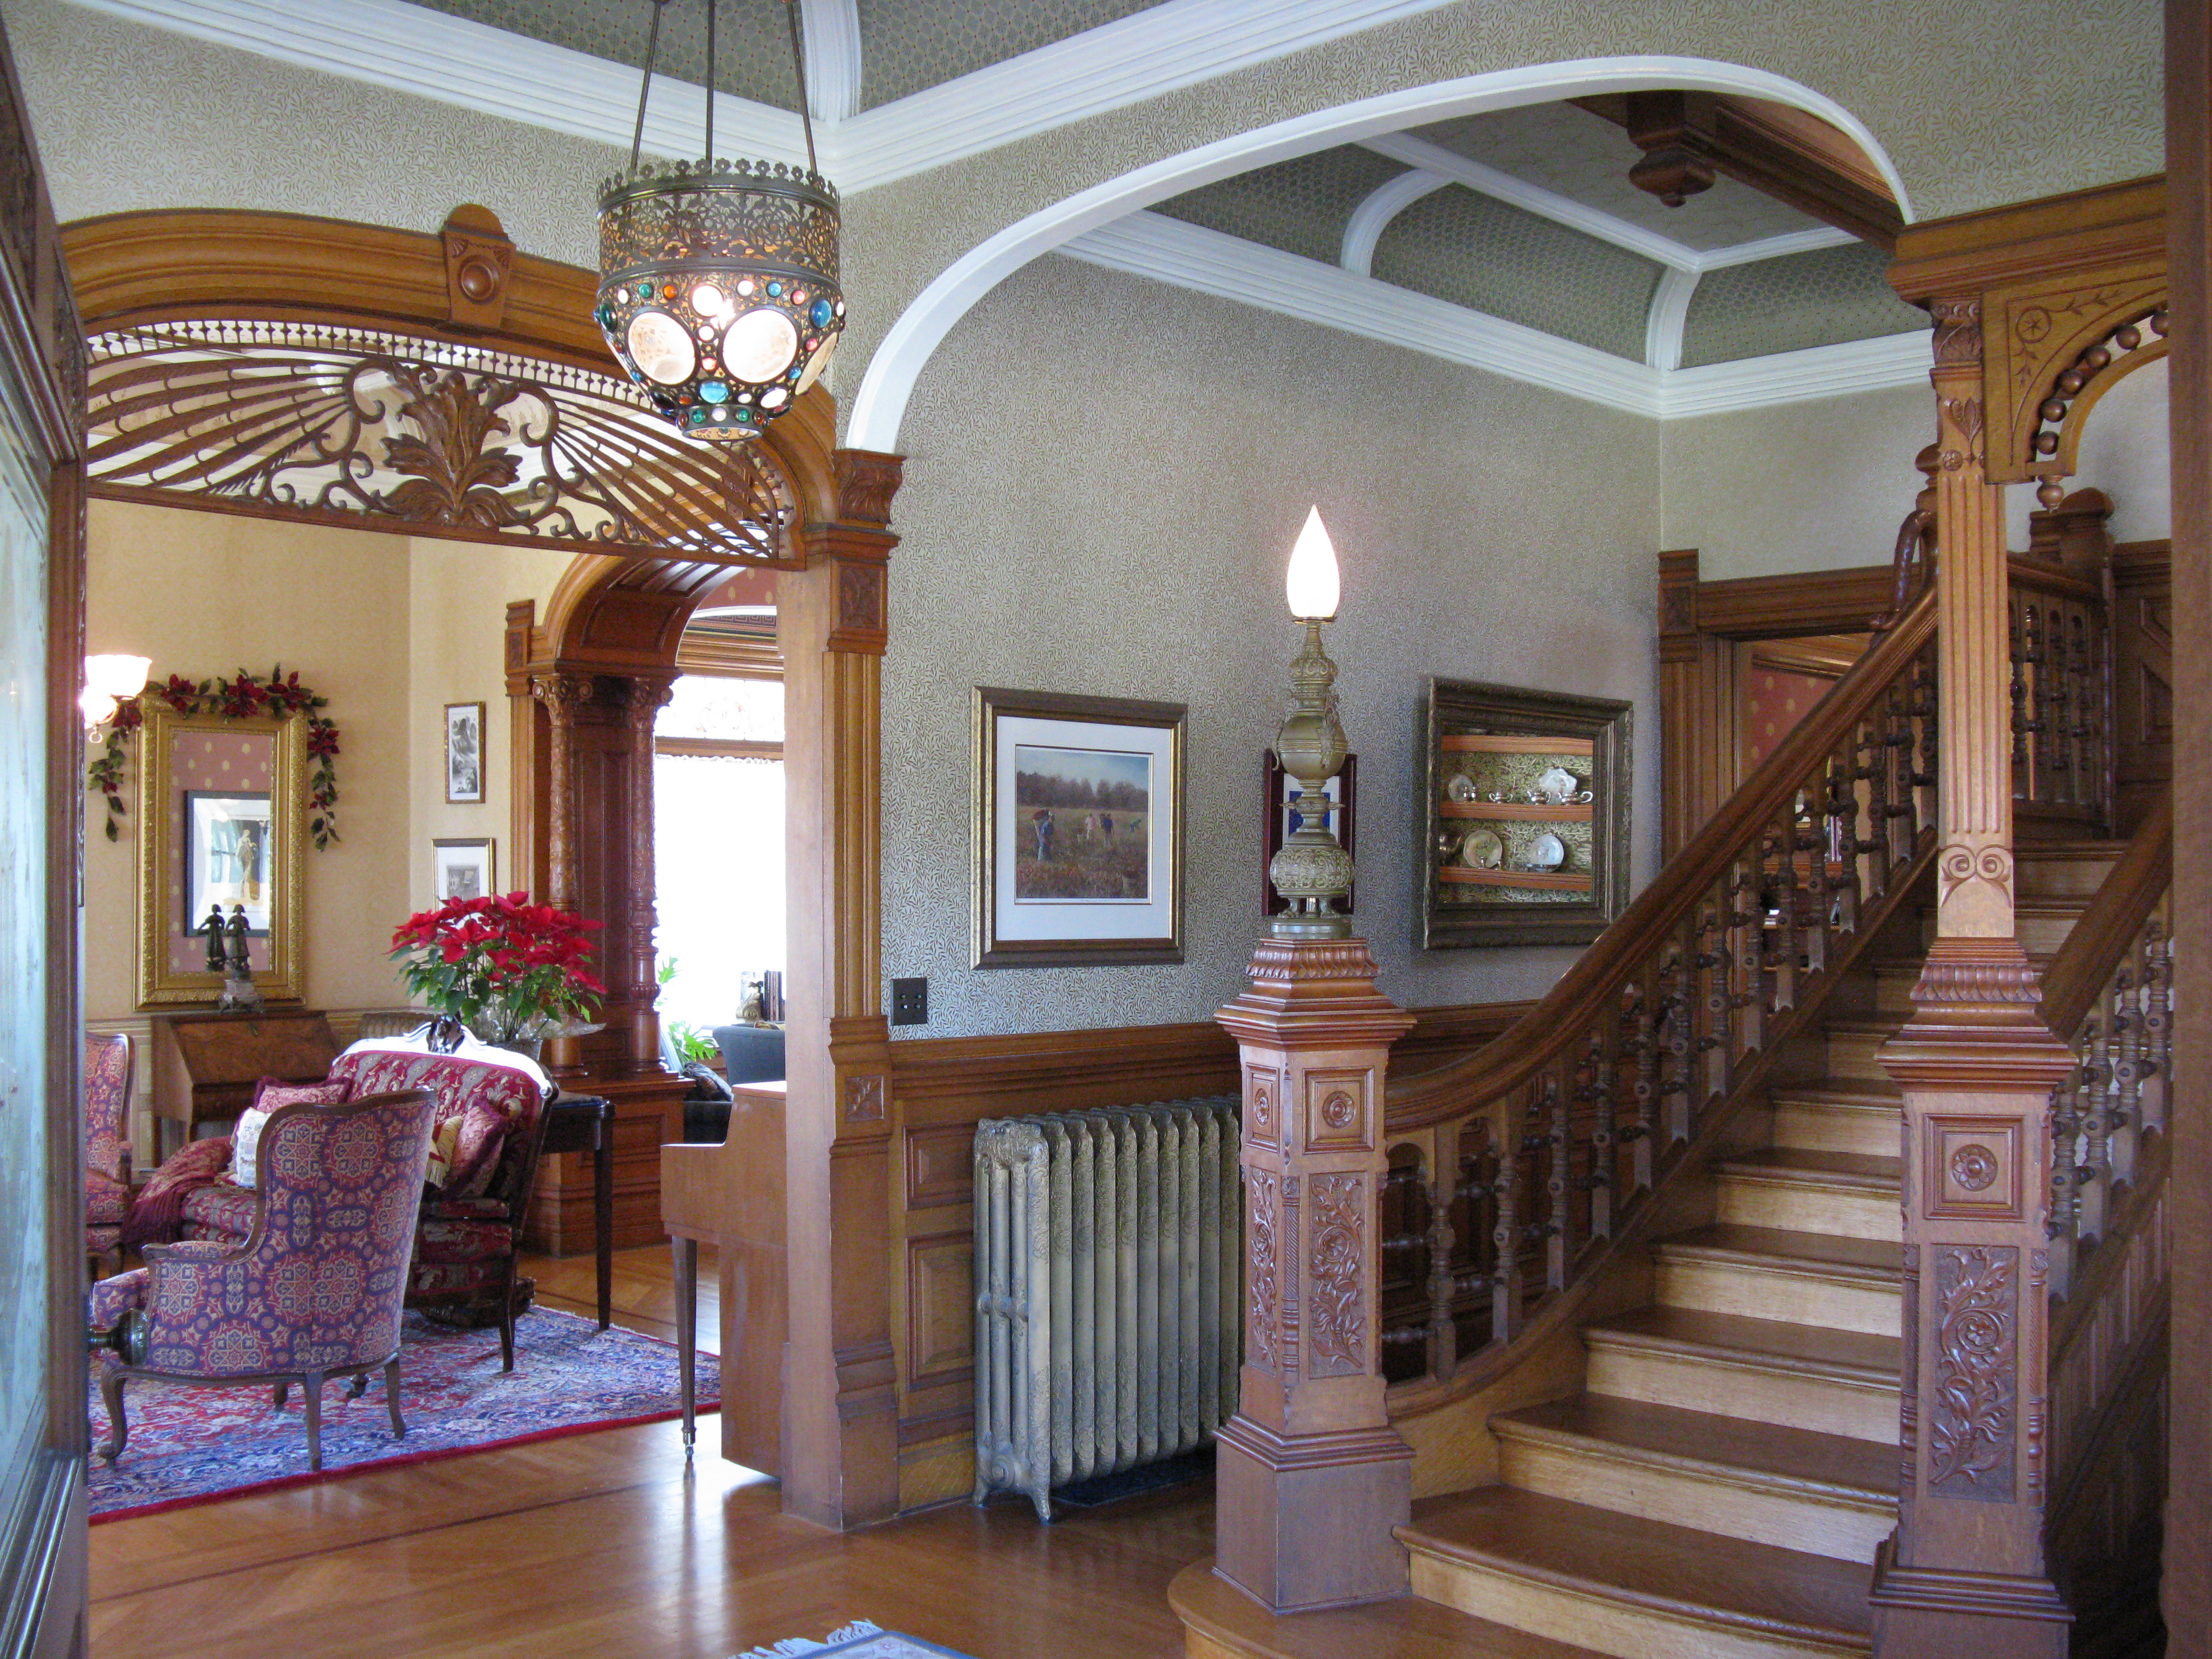 Inside Decor And Design File Morey Mansion Foyer Jpg Wikimedia Commons